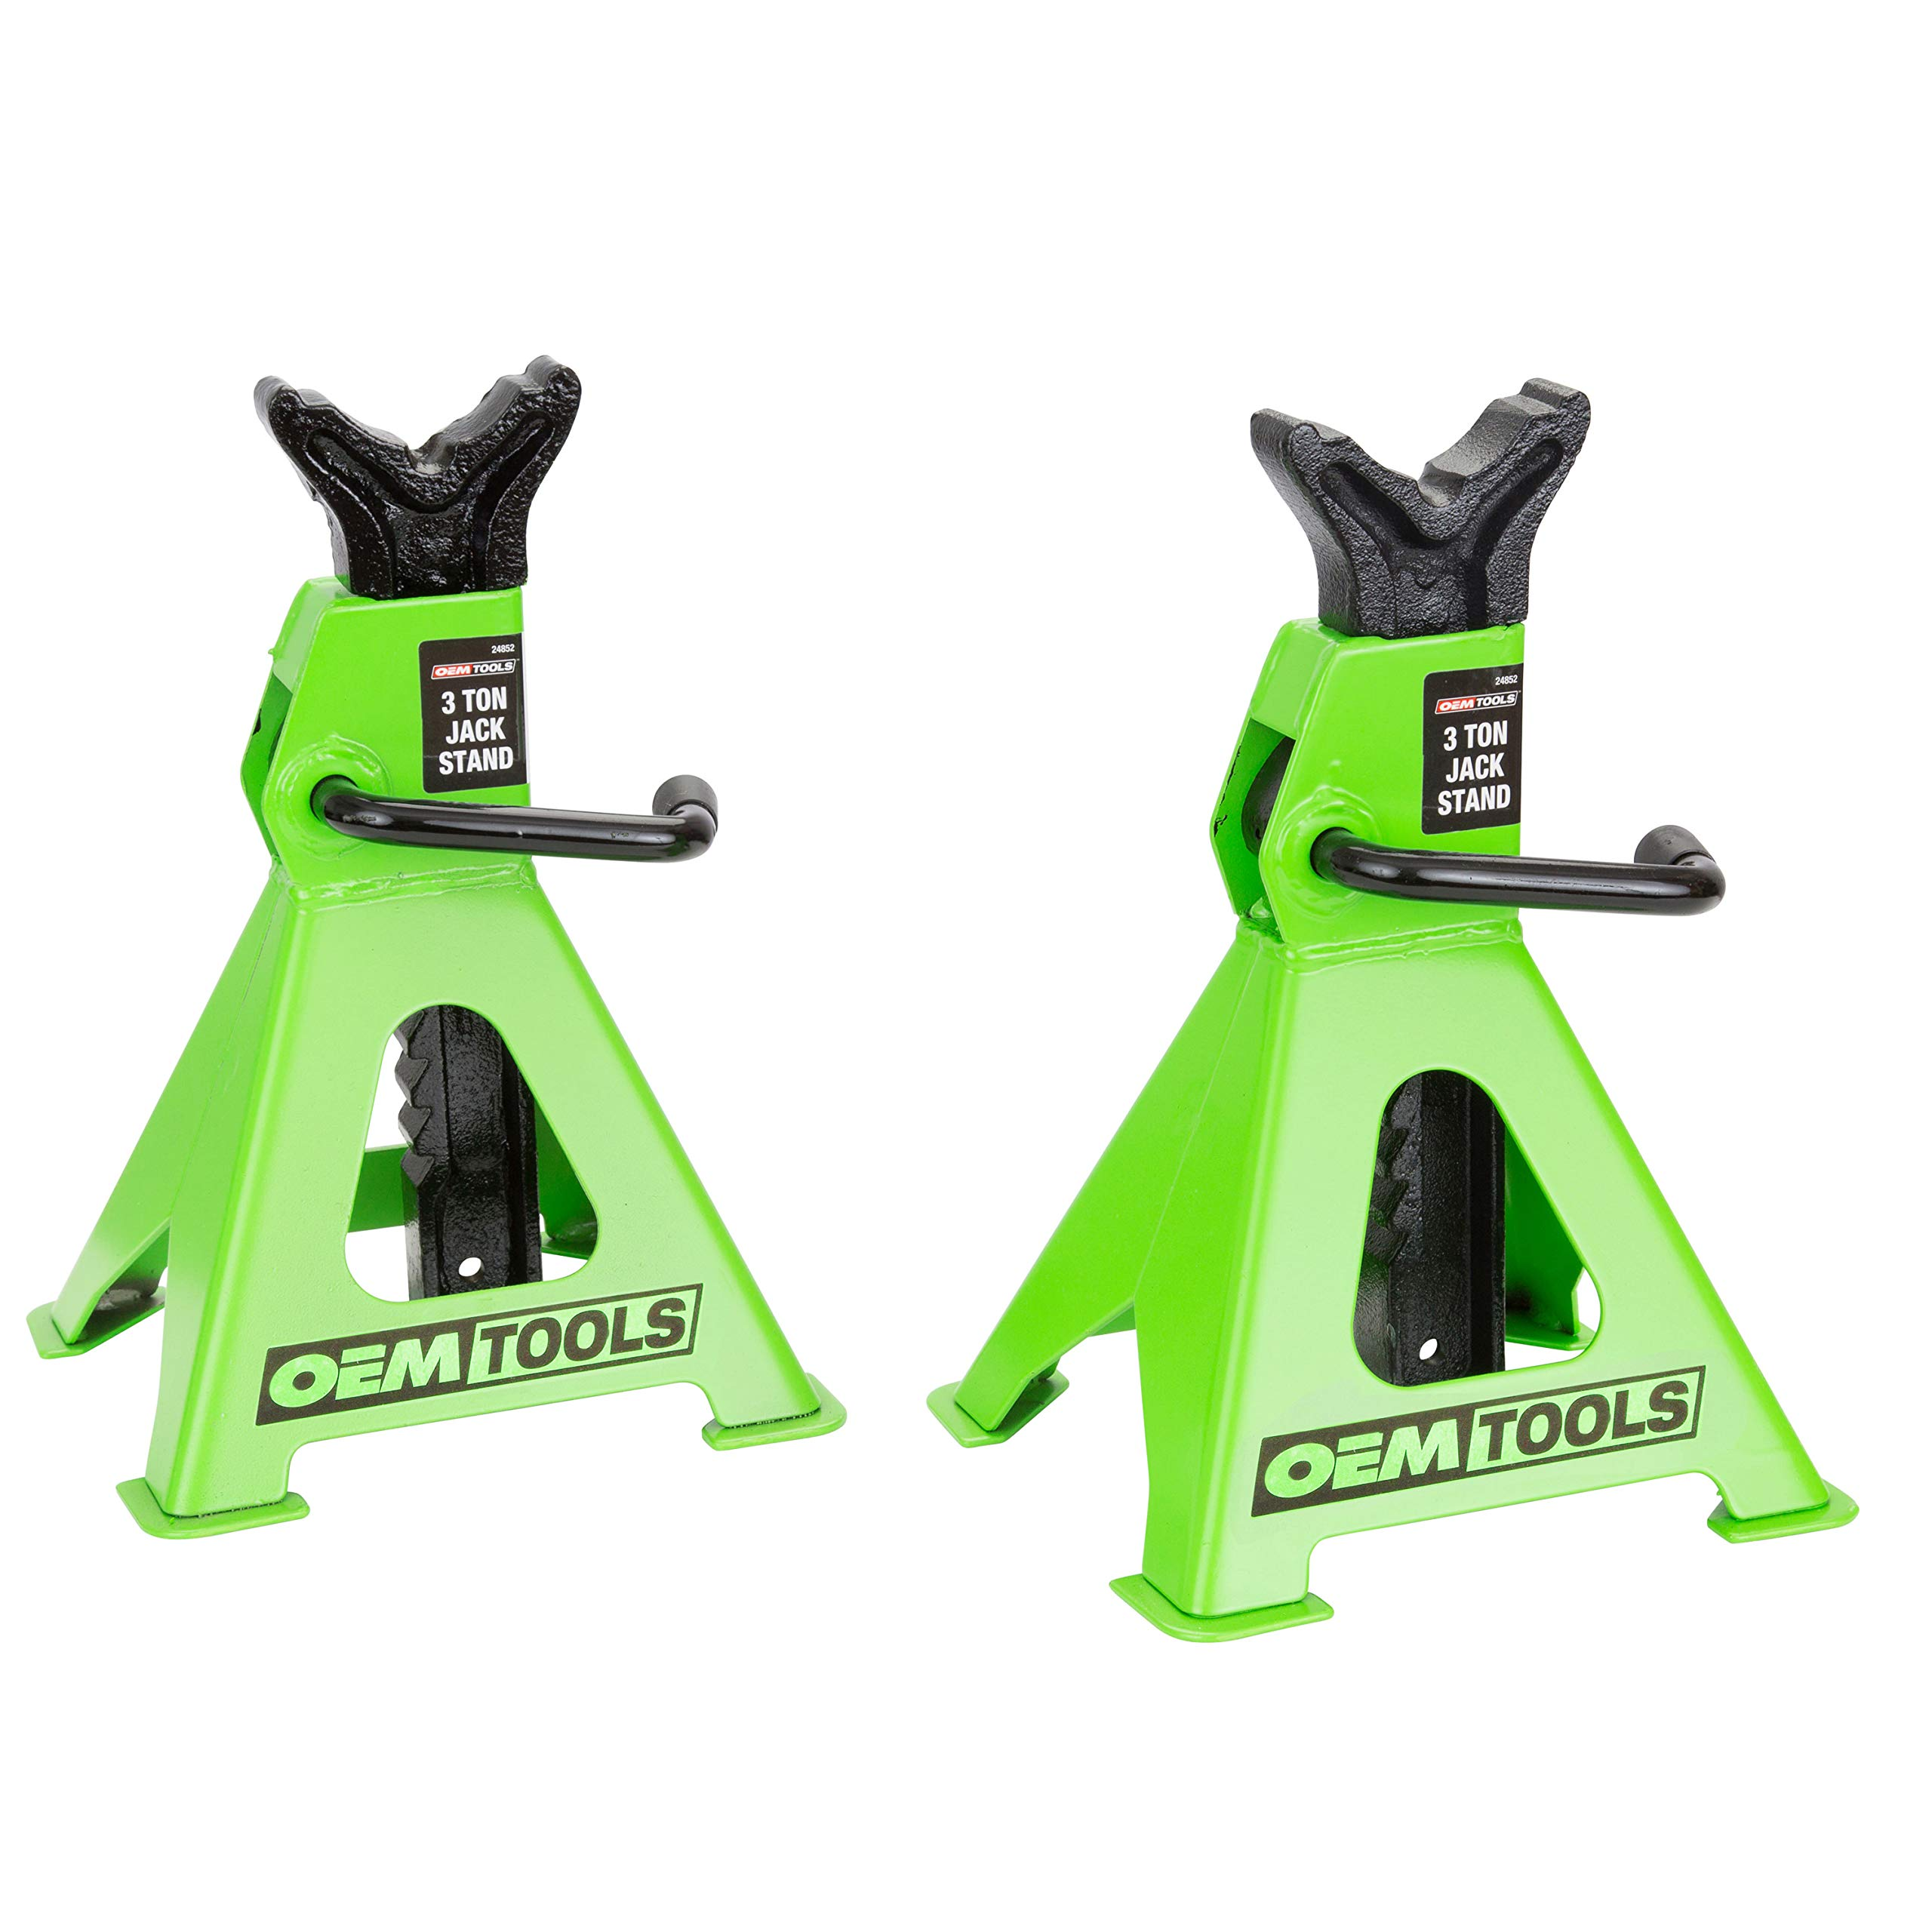 OEMTOOLS 24852 3 Ton Jack Stands (Pair) by OEMTOOLS